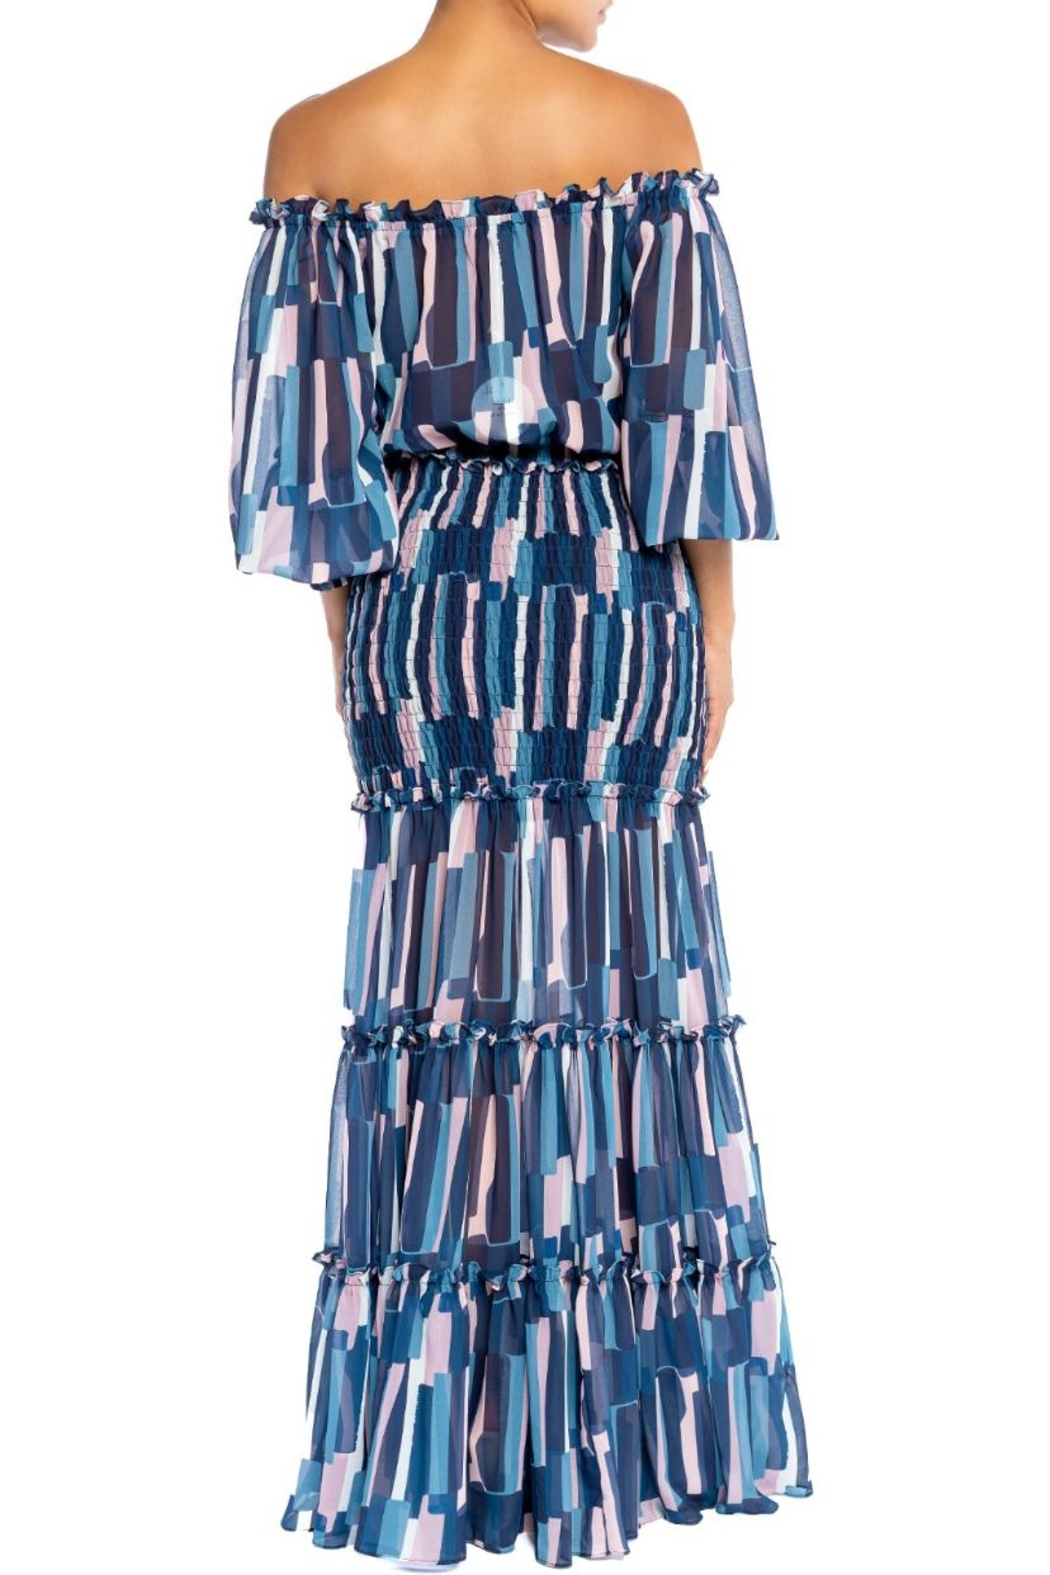 luxxel Off-Shoulder Striped Maxi - Front Full Image